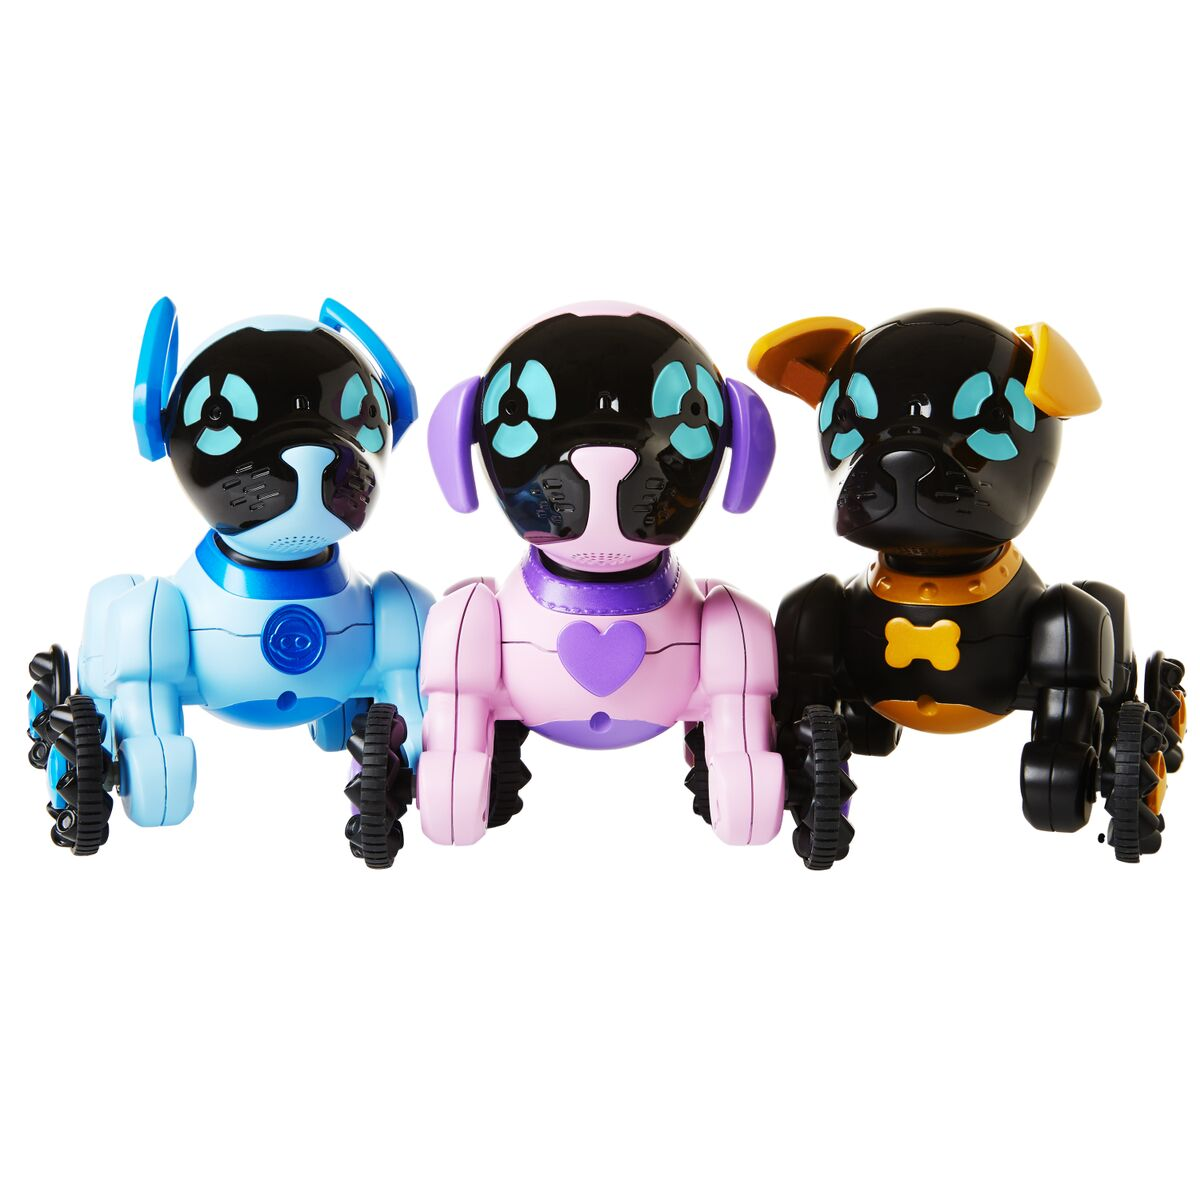 Chippies by WowWee